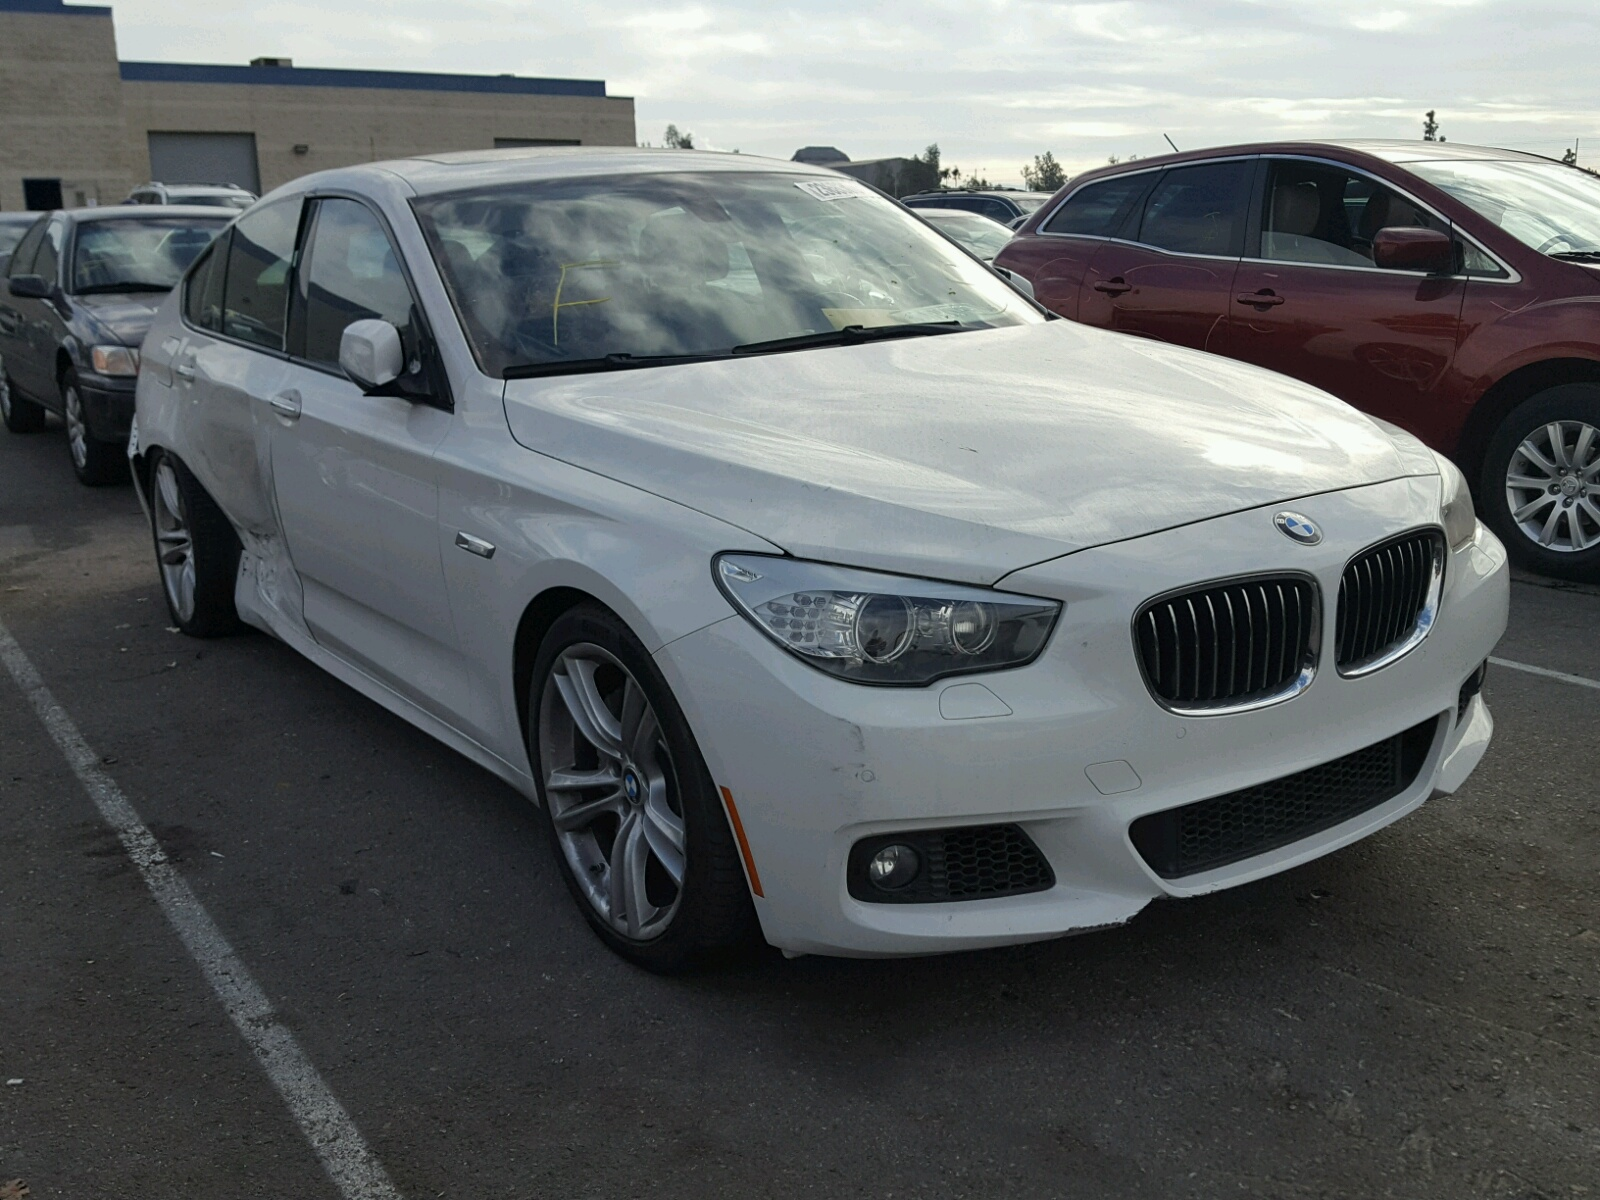 Auto Auction Ended On Vin Wbafr7c58dc822272 2013 Bmw 535 In Tx Houston